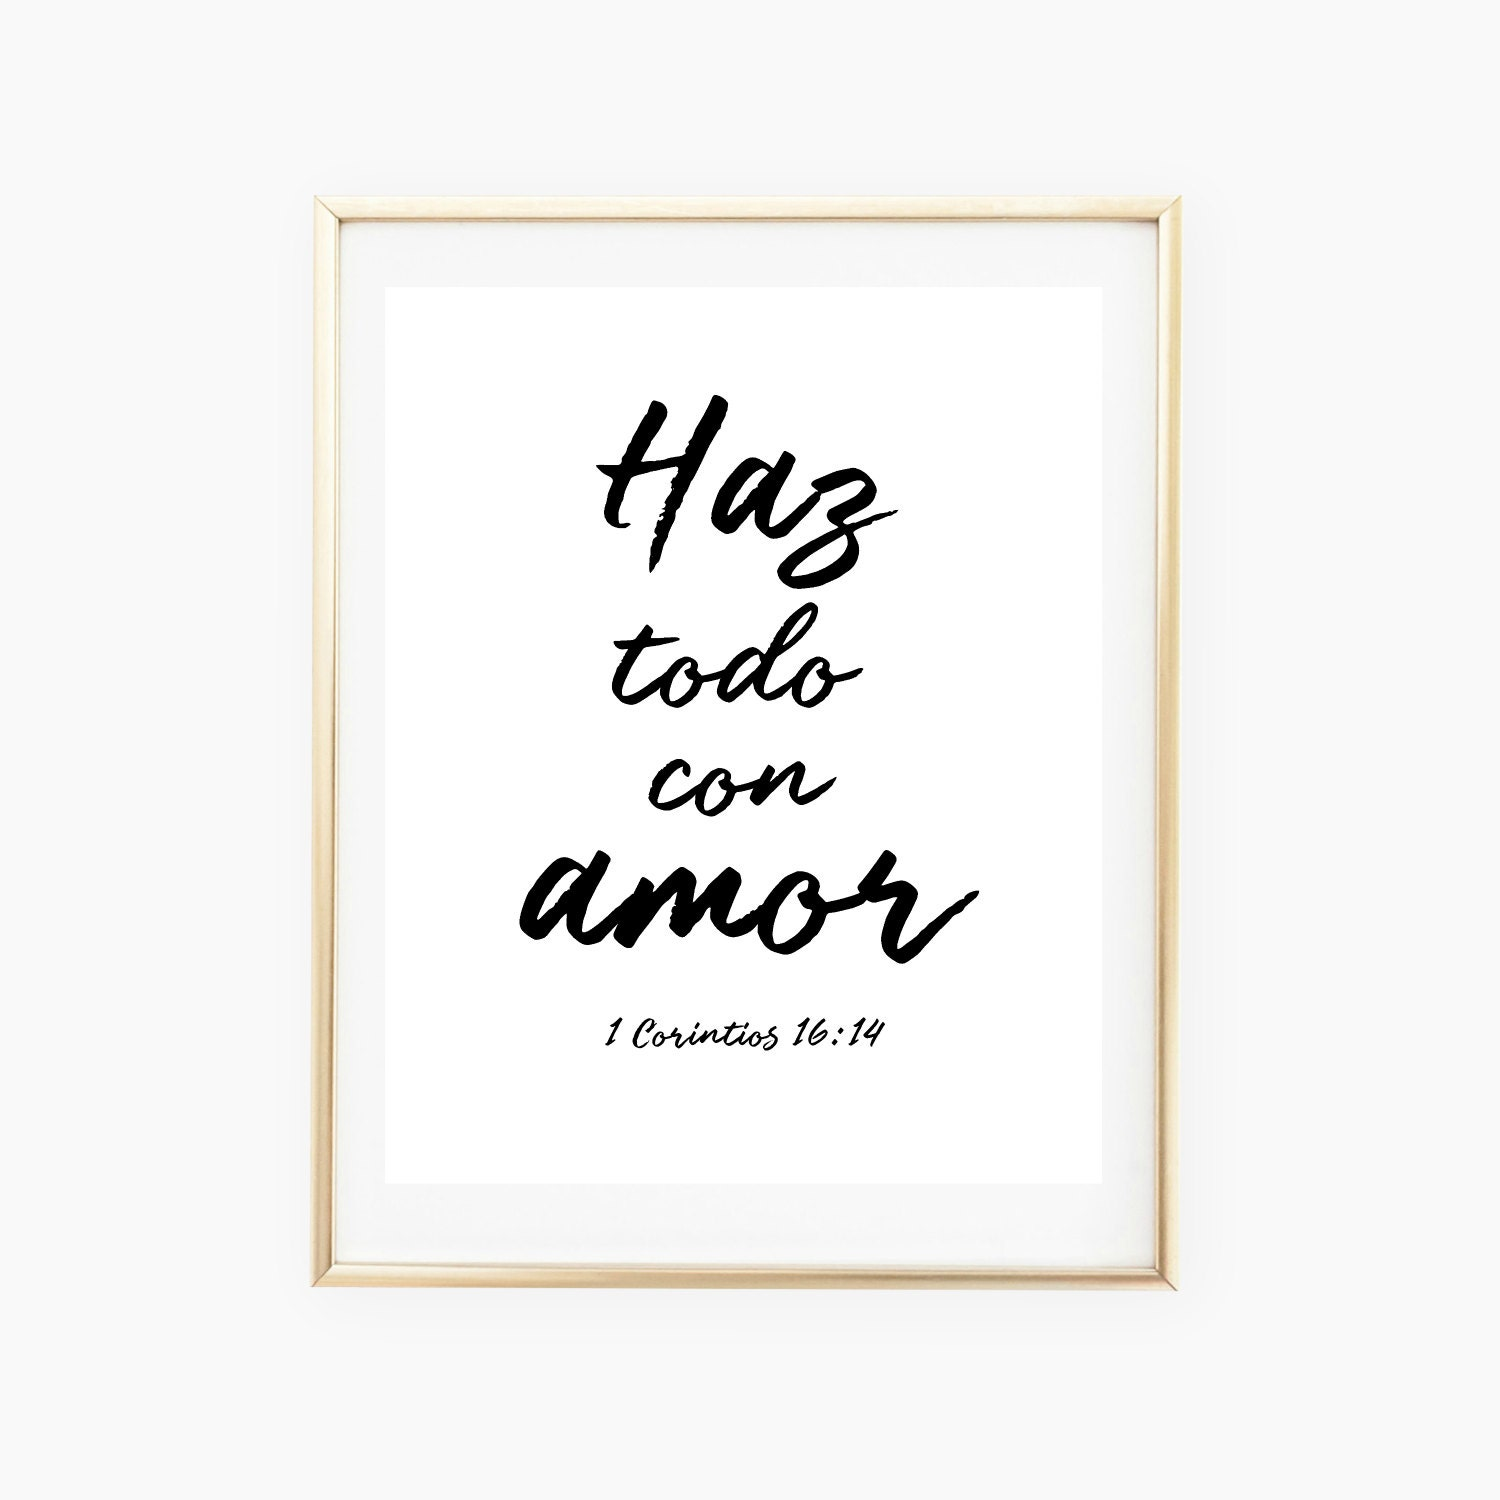 flirting quotes in spanish translation bible download